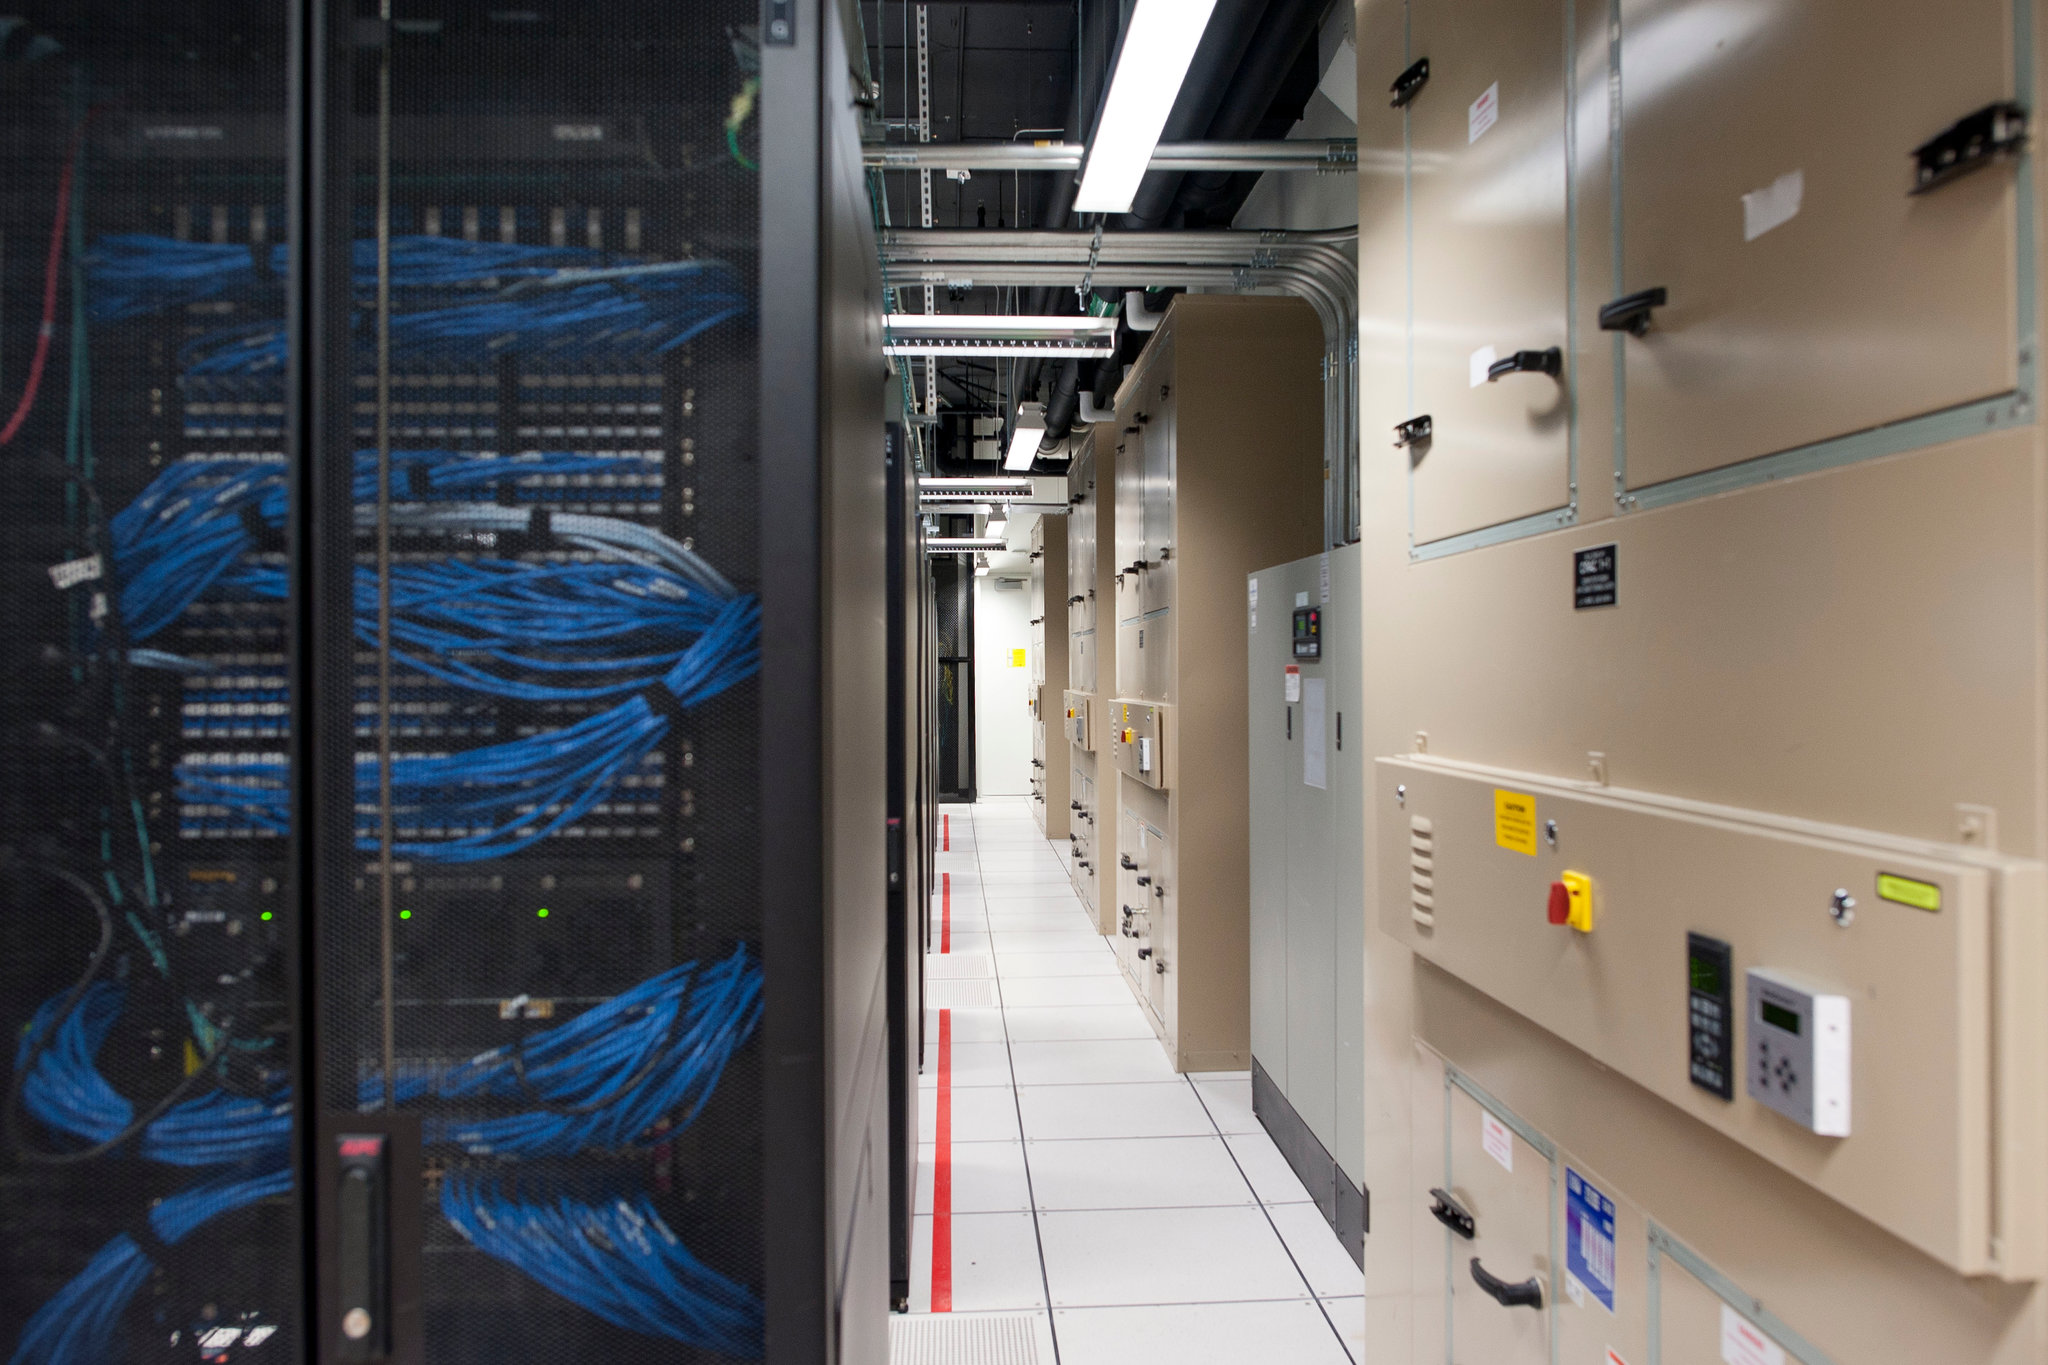 The server room at Symantec in Culver City, Calif. The company provided the first evidence that Chinese state-sponsored hackers had acquired some of the National Security Agency's cybertools before other hackers. Credit Michal Czerwonka for The New York Times